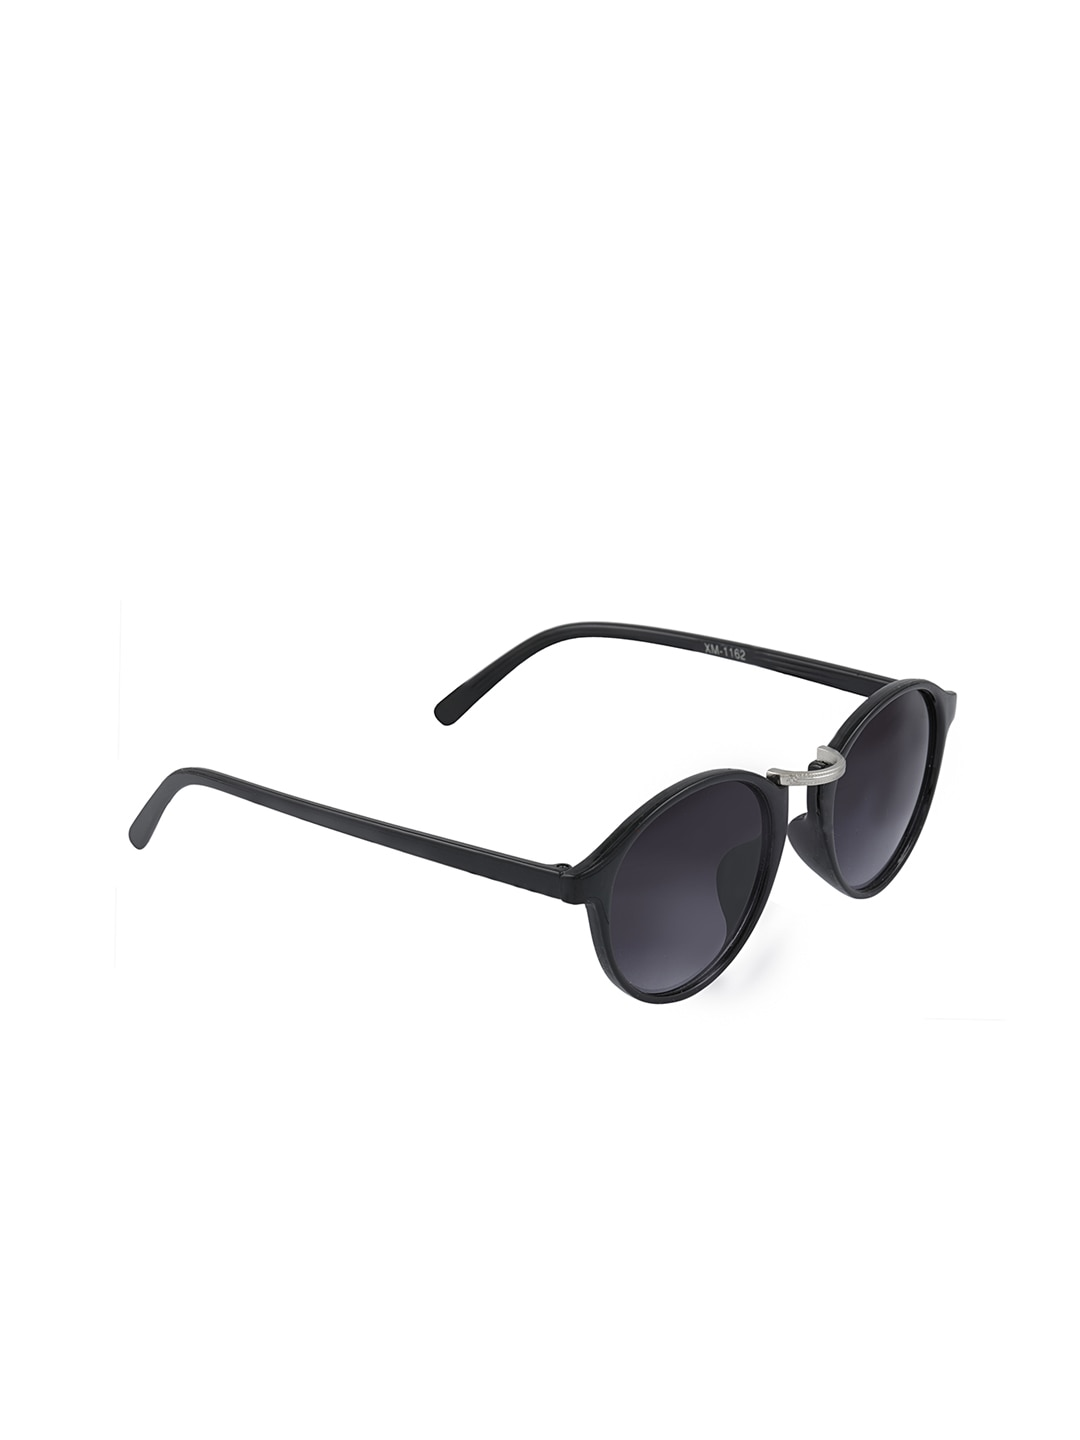 65a479d972a Sunglasses For Men - Buy Mens Sunglasses Online in India